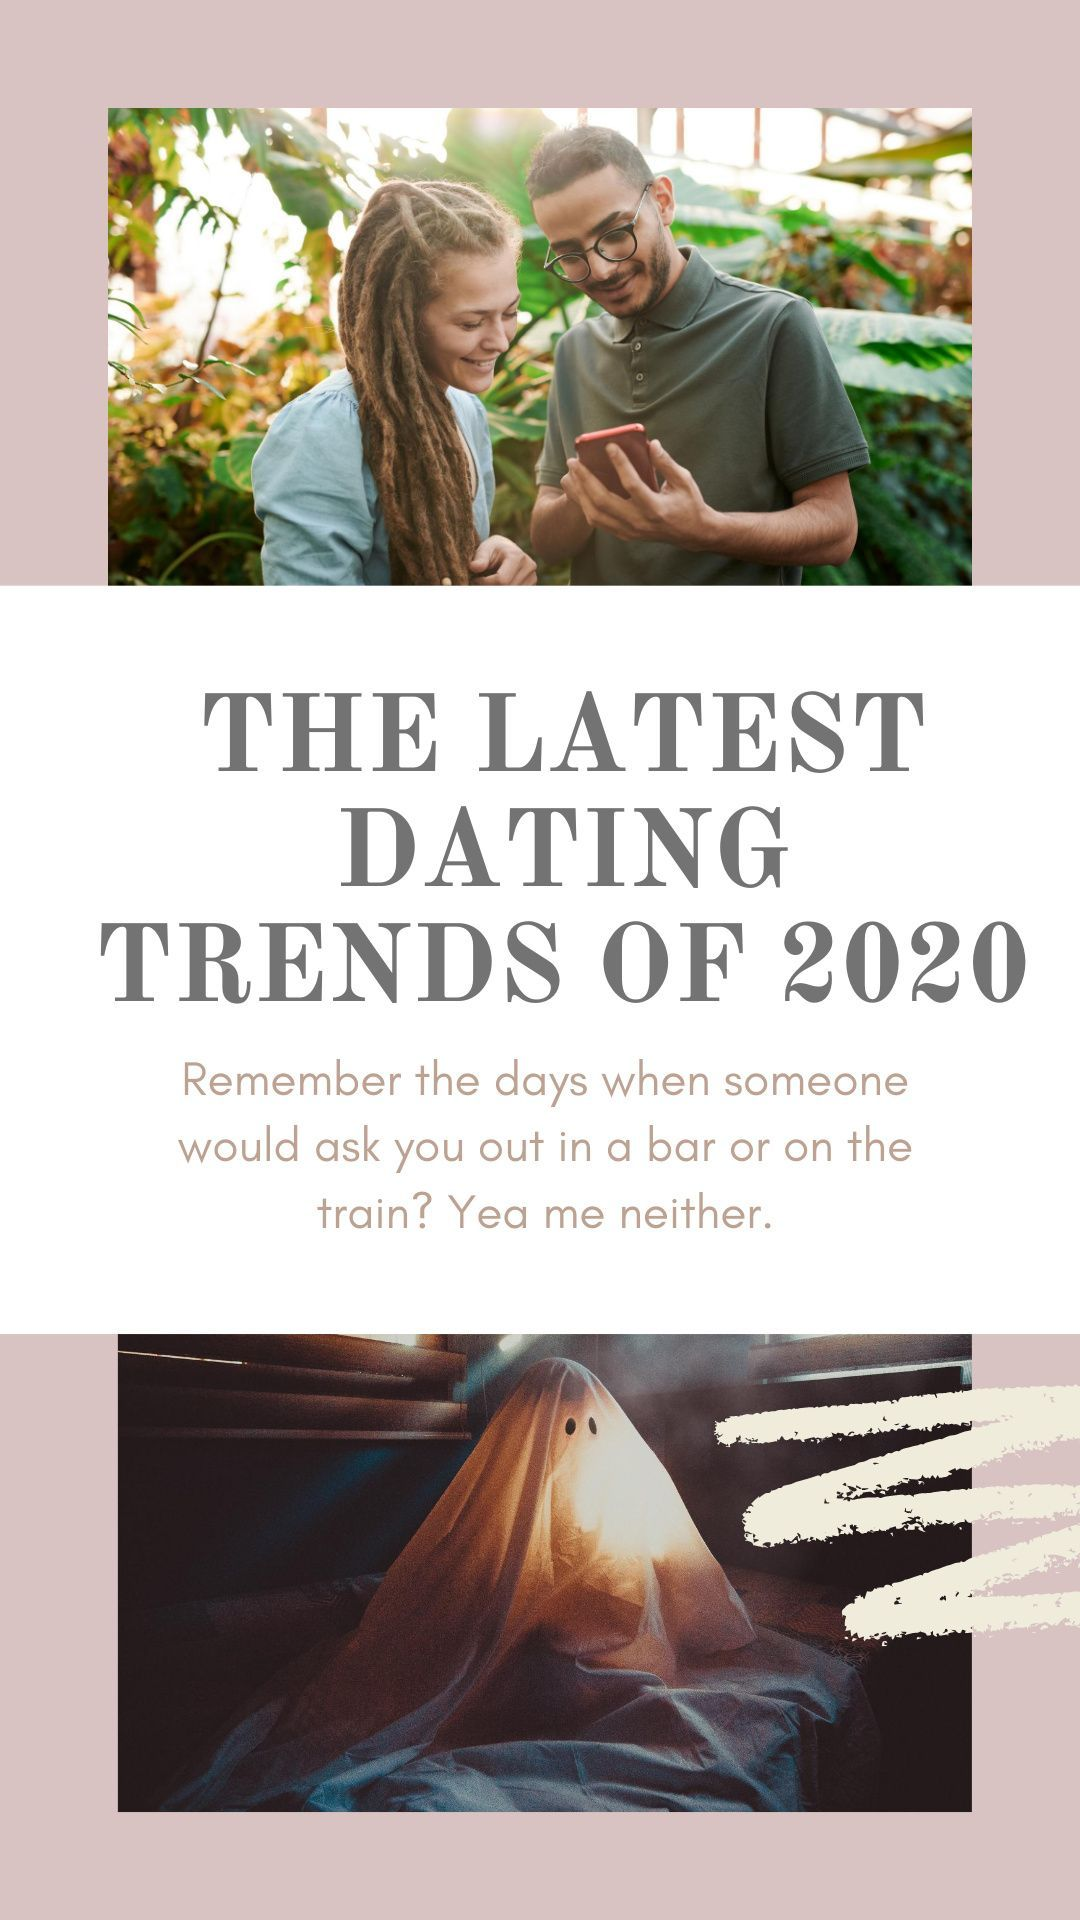 Latest dating trends of 2020. Dating apps. Ghosting, zombieing, breadcrumbing. Finding love online. #singlelife #datingadvice #datingapps #bumble #hinge